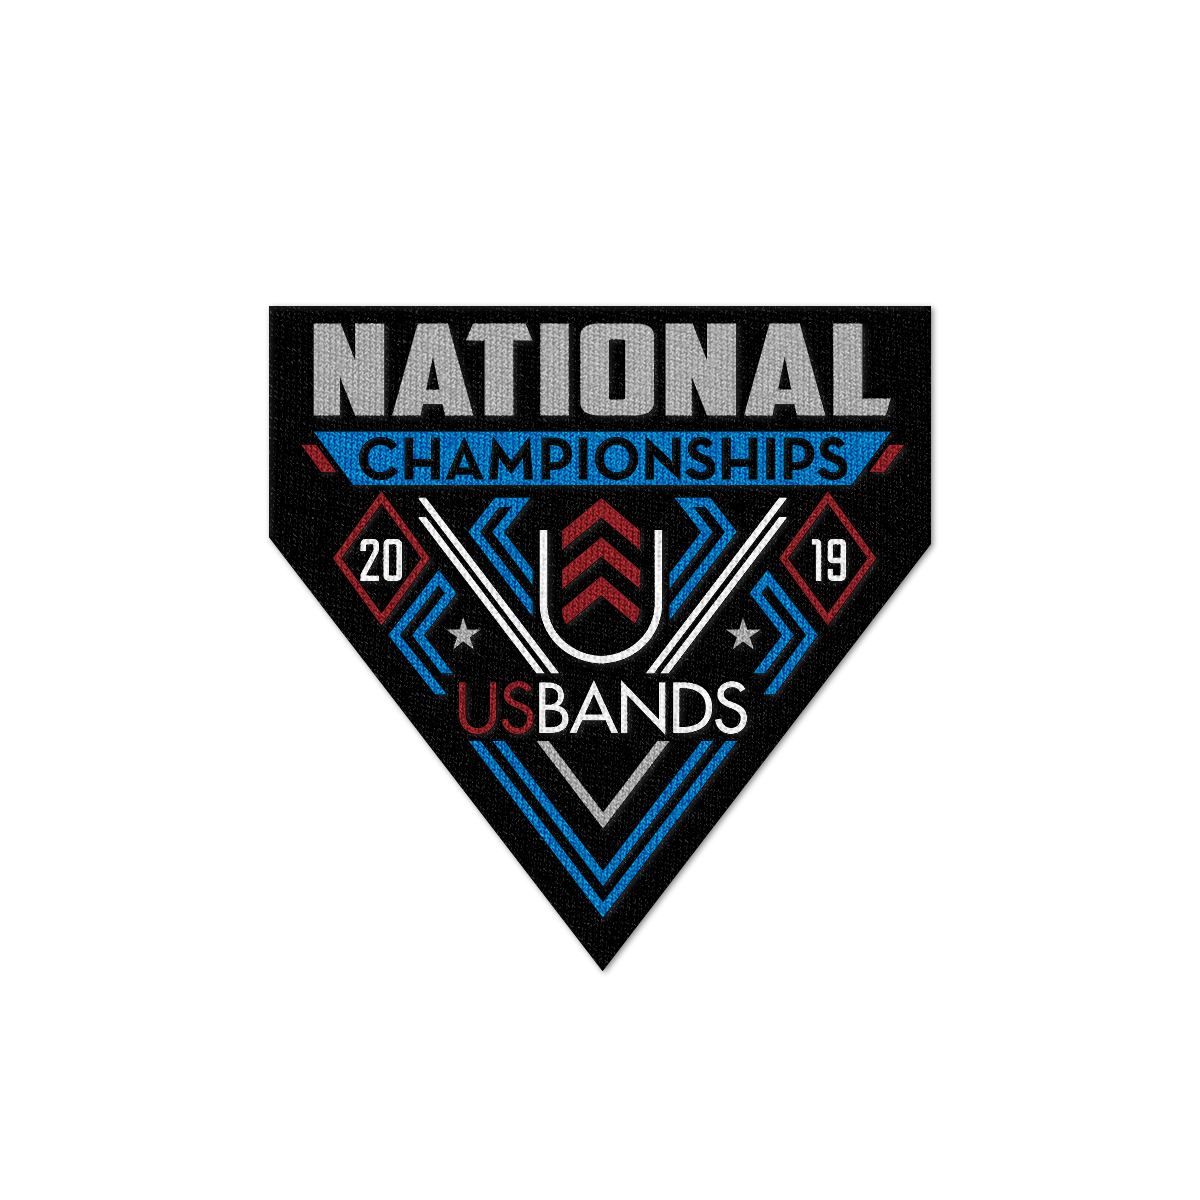 2019 USBands National Championships Patch